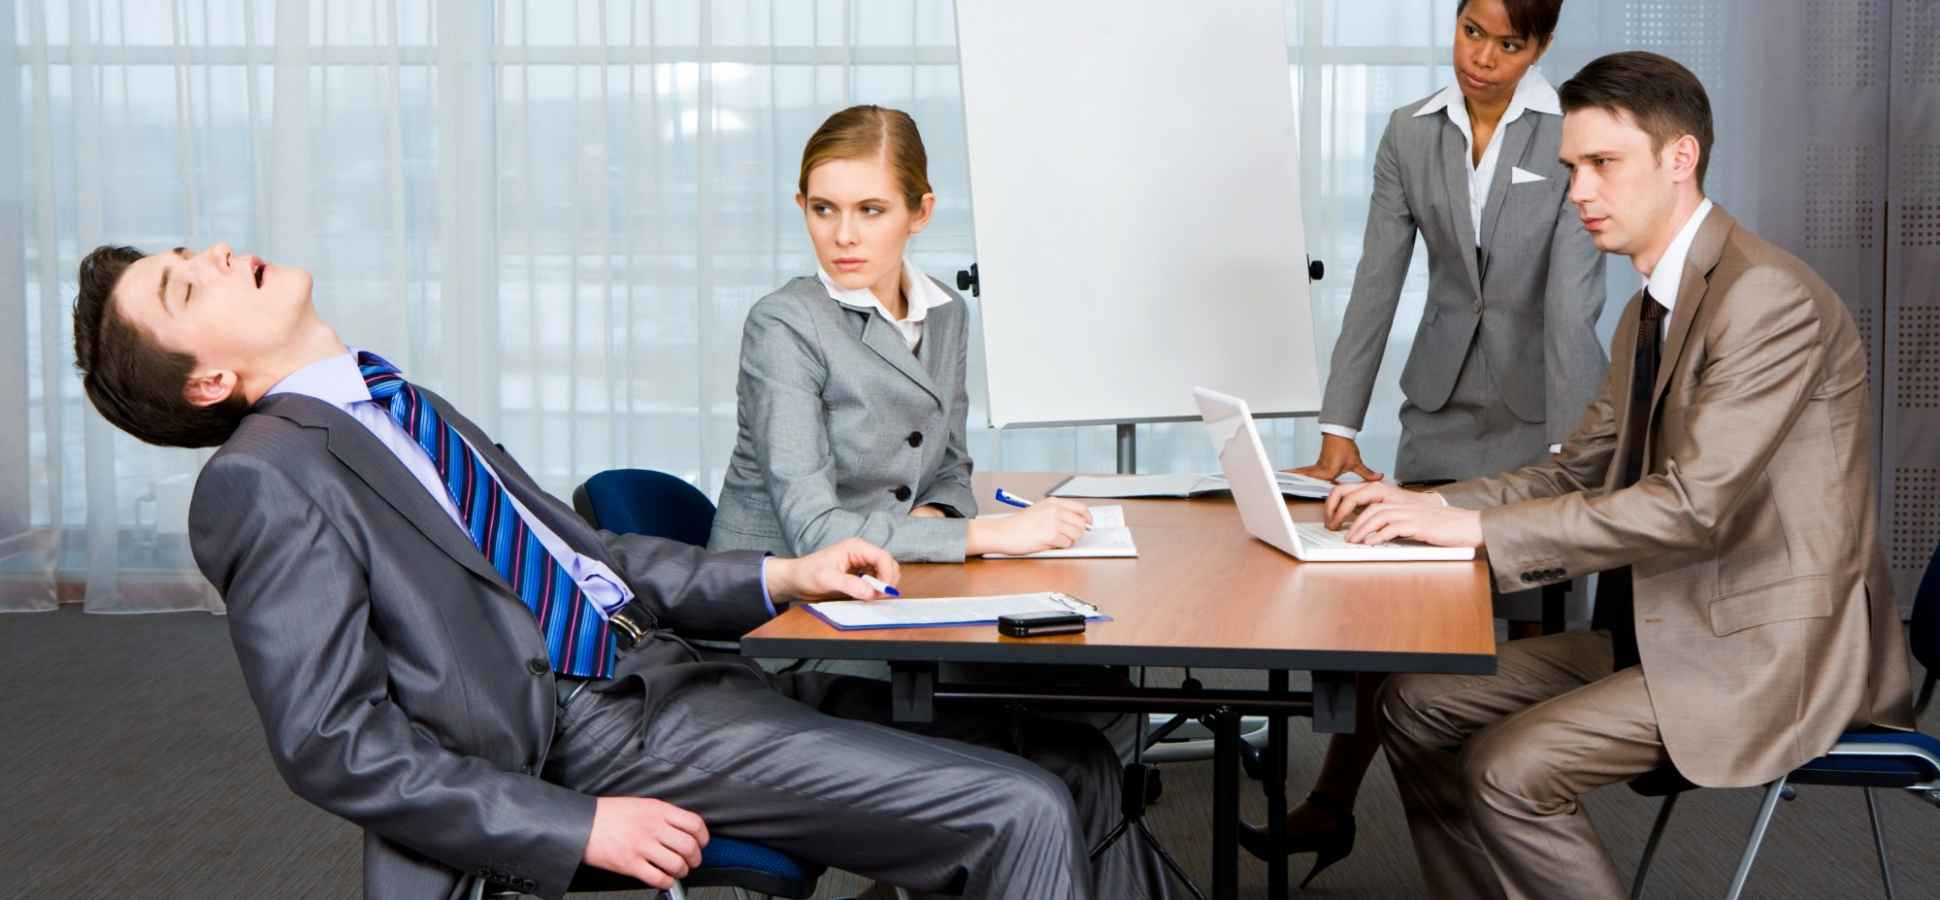 5 Bad Leadership Habits That Will Make You Look Totally Unprofessional